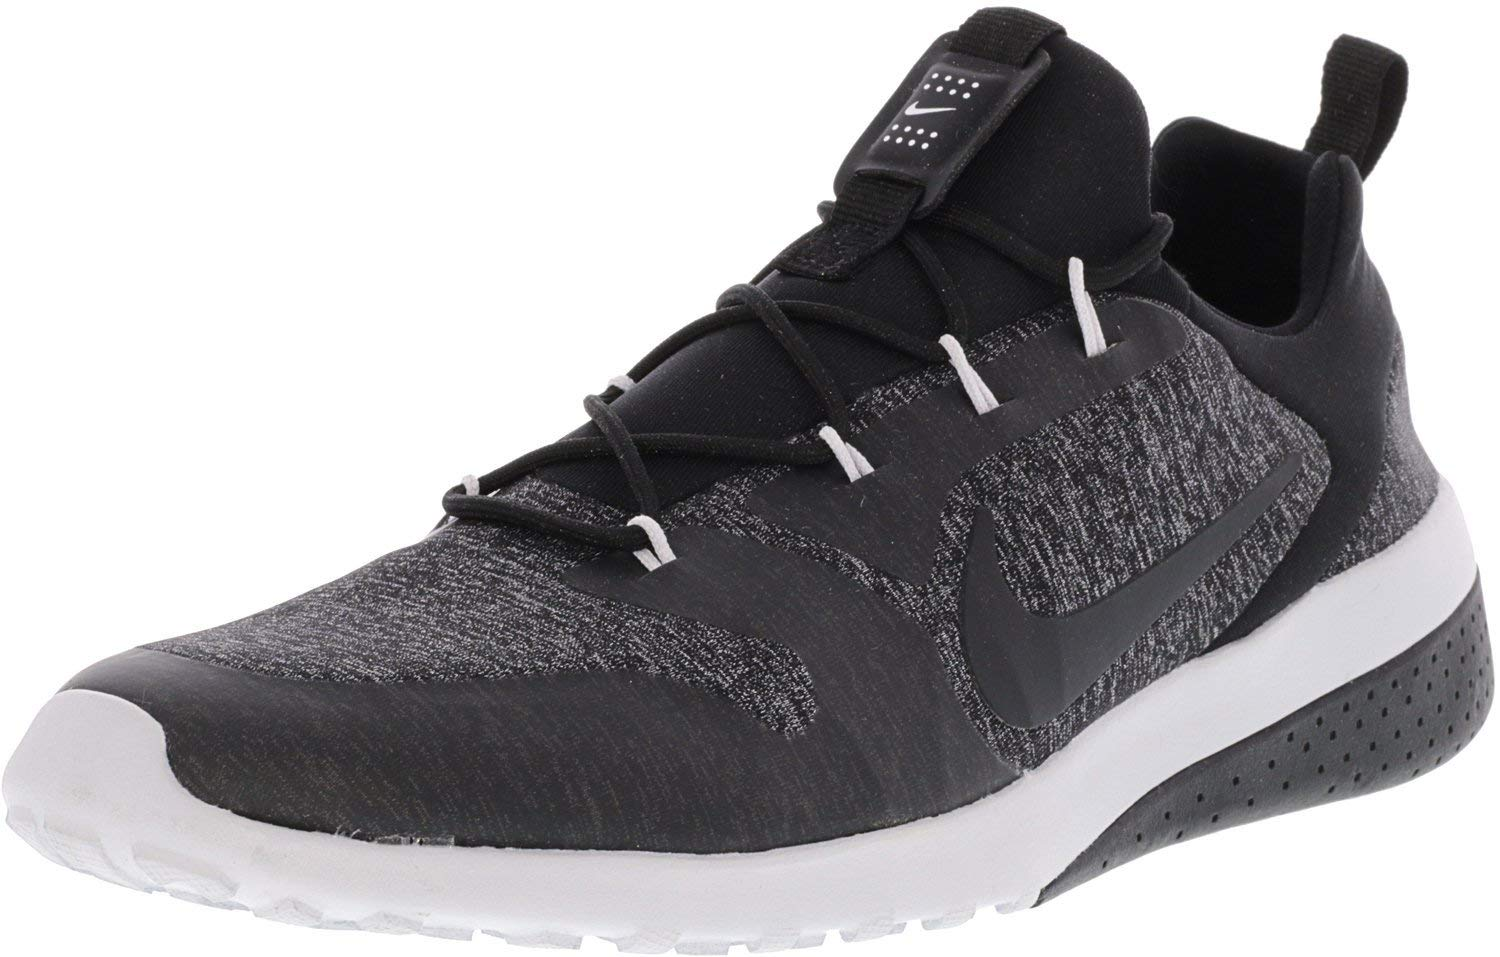 NIKE Womens Ck Racer Low Top Lace Up Running, Black/Black White, Size 8.5